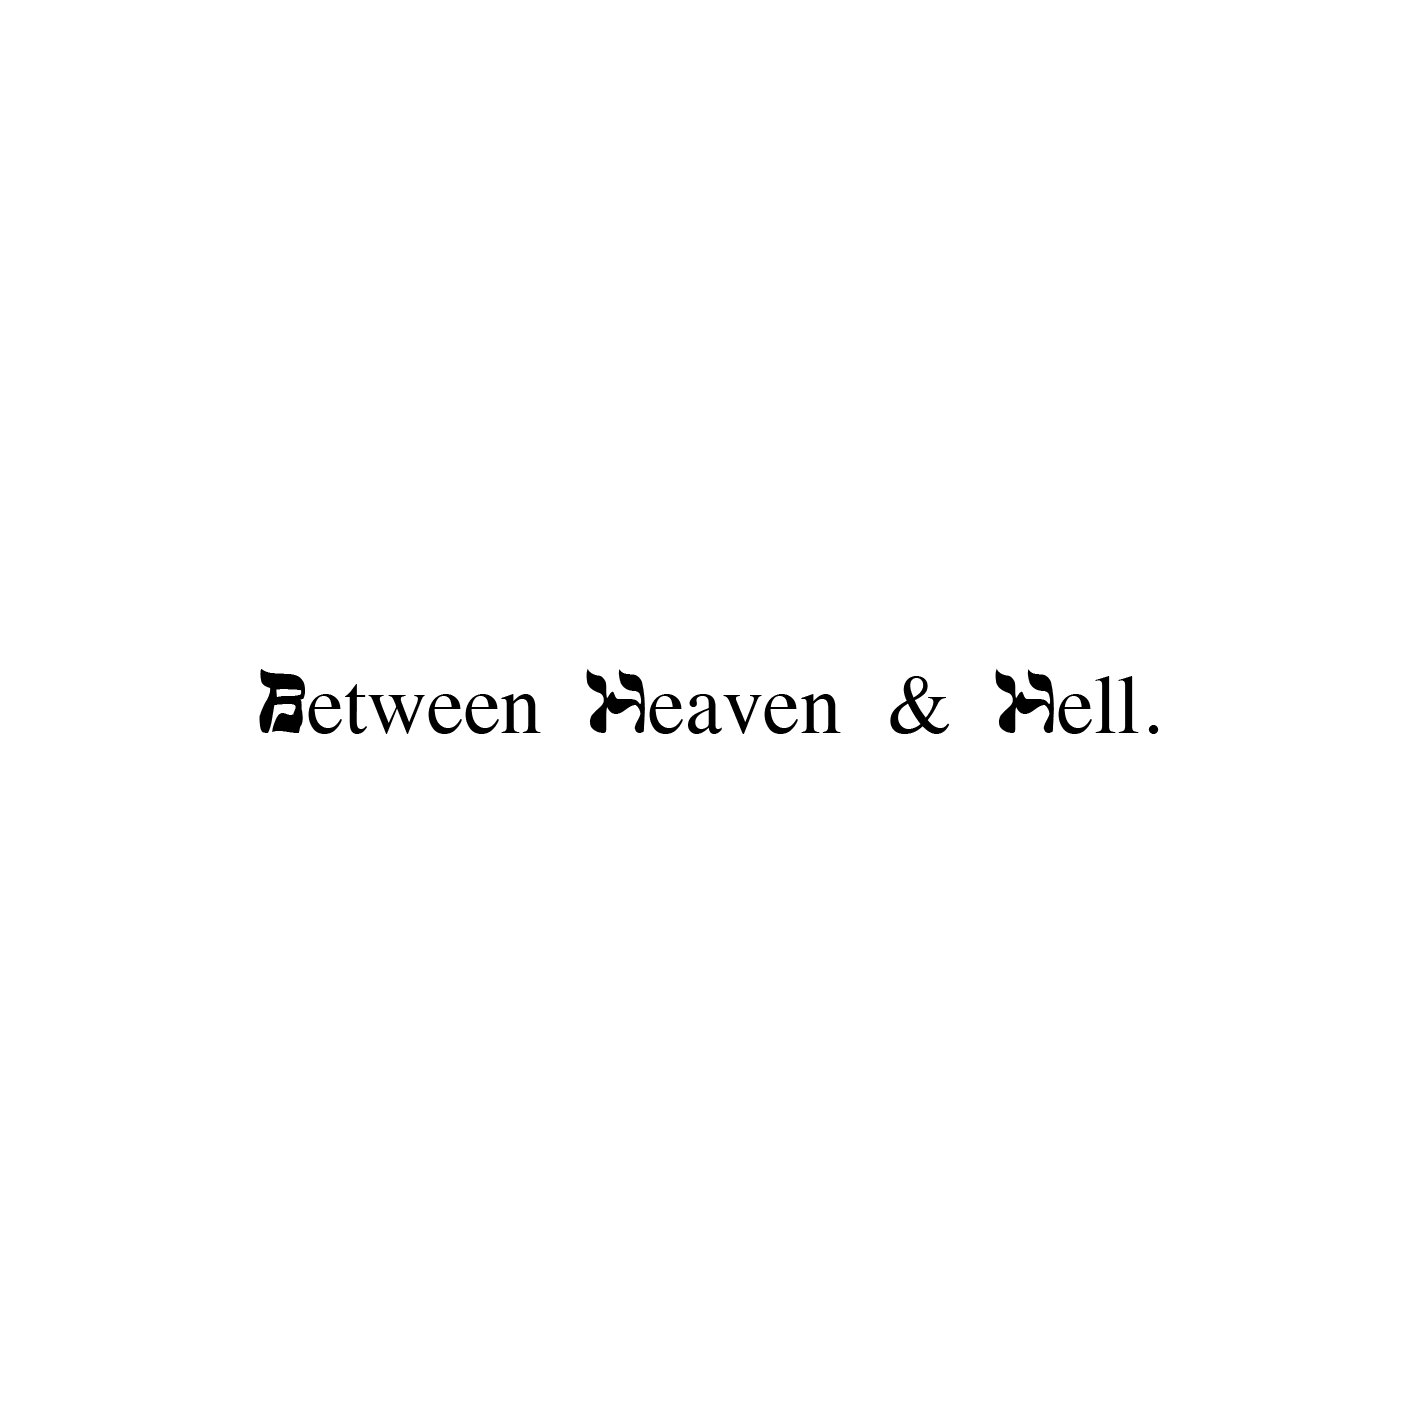 'Between Heaven & Hell' 2015 - Ethan Solouki